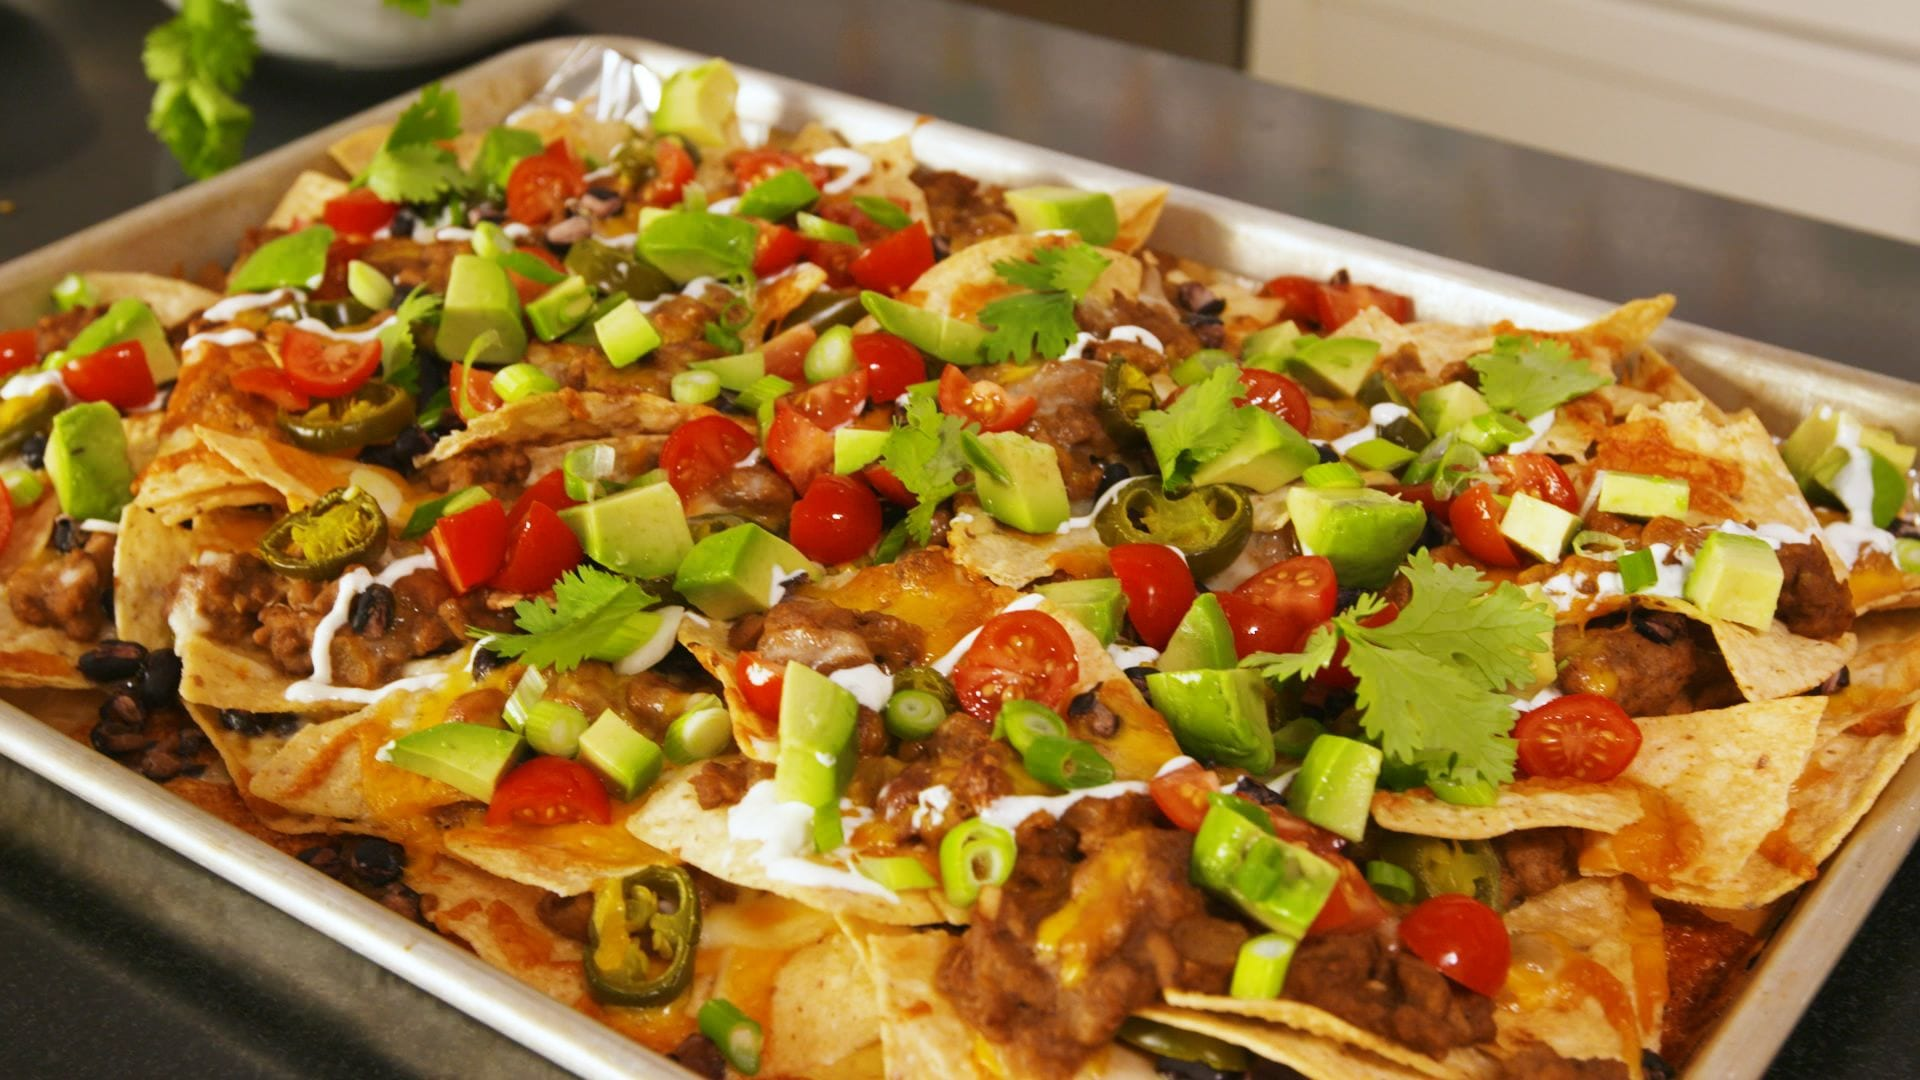 Nachos supreme recipe for meal planning busy week